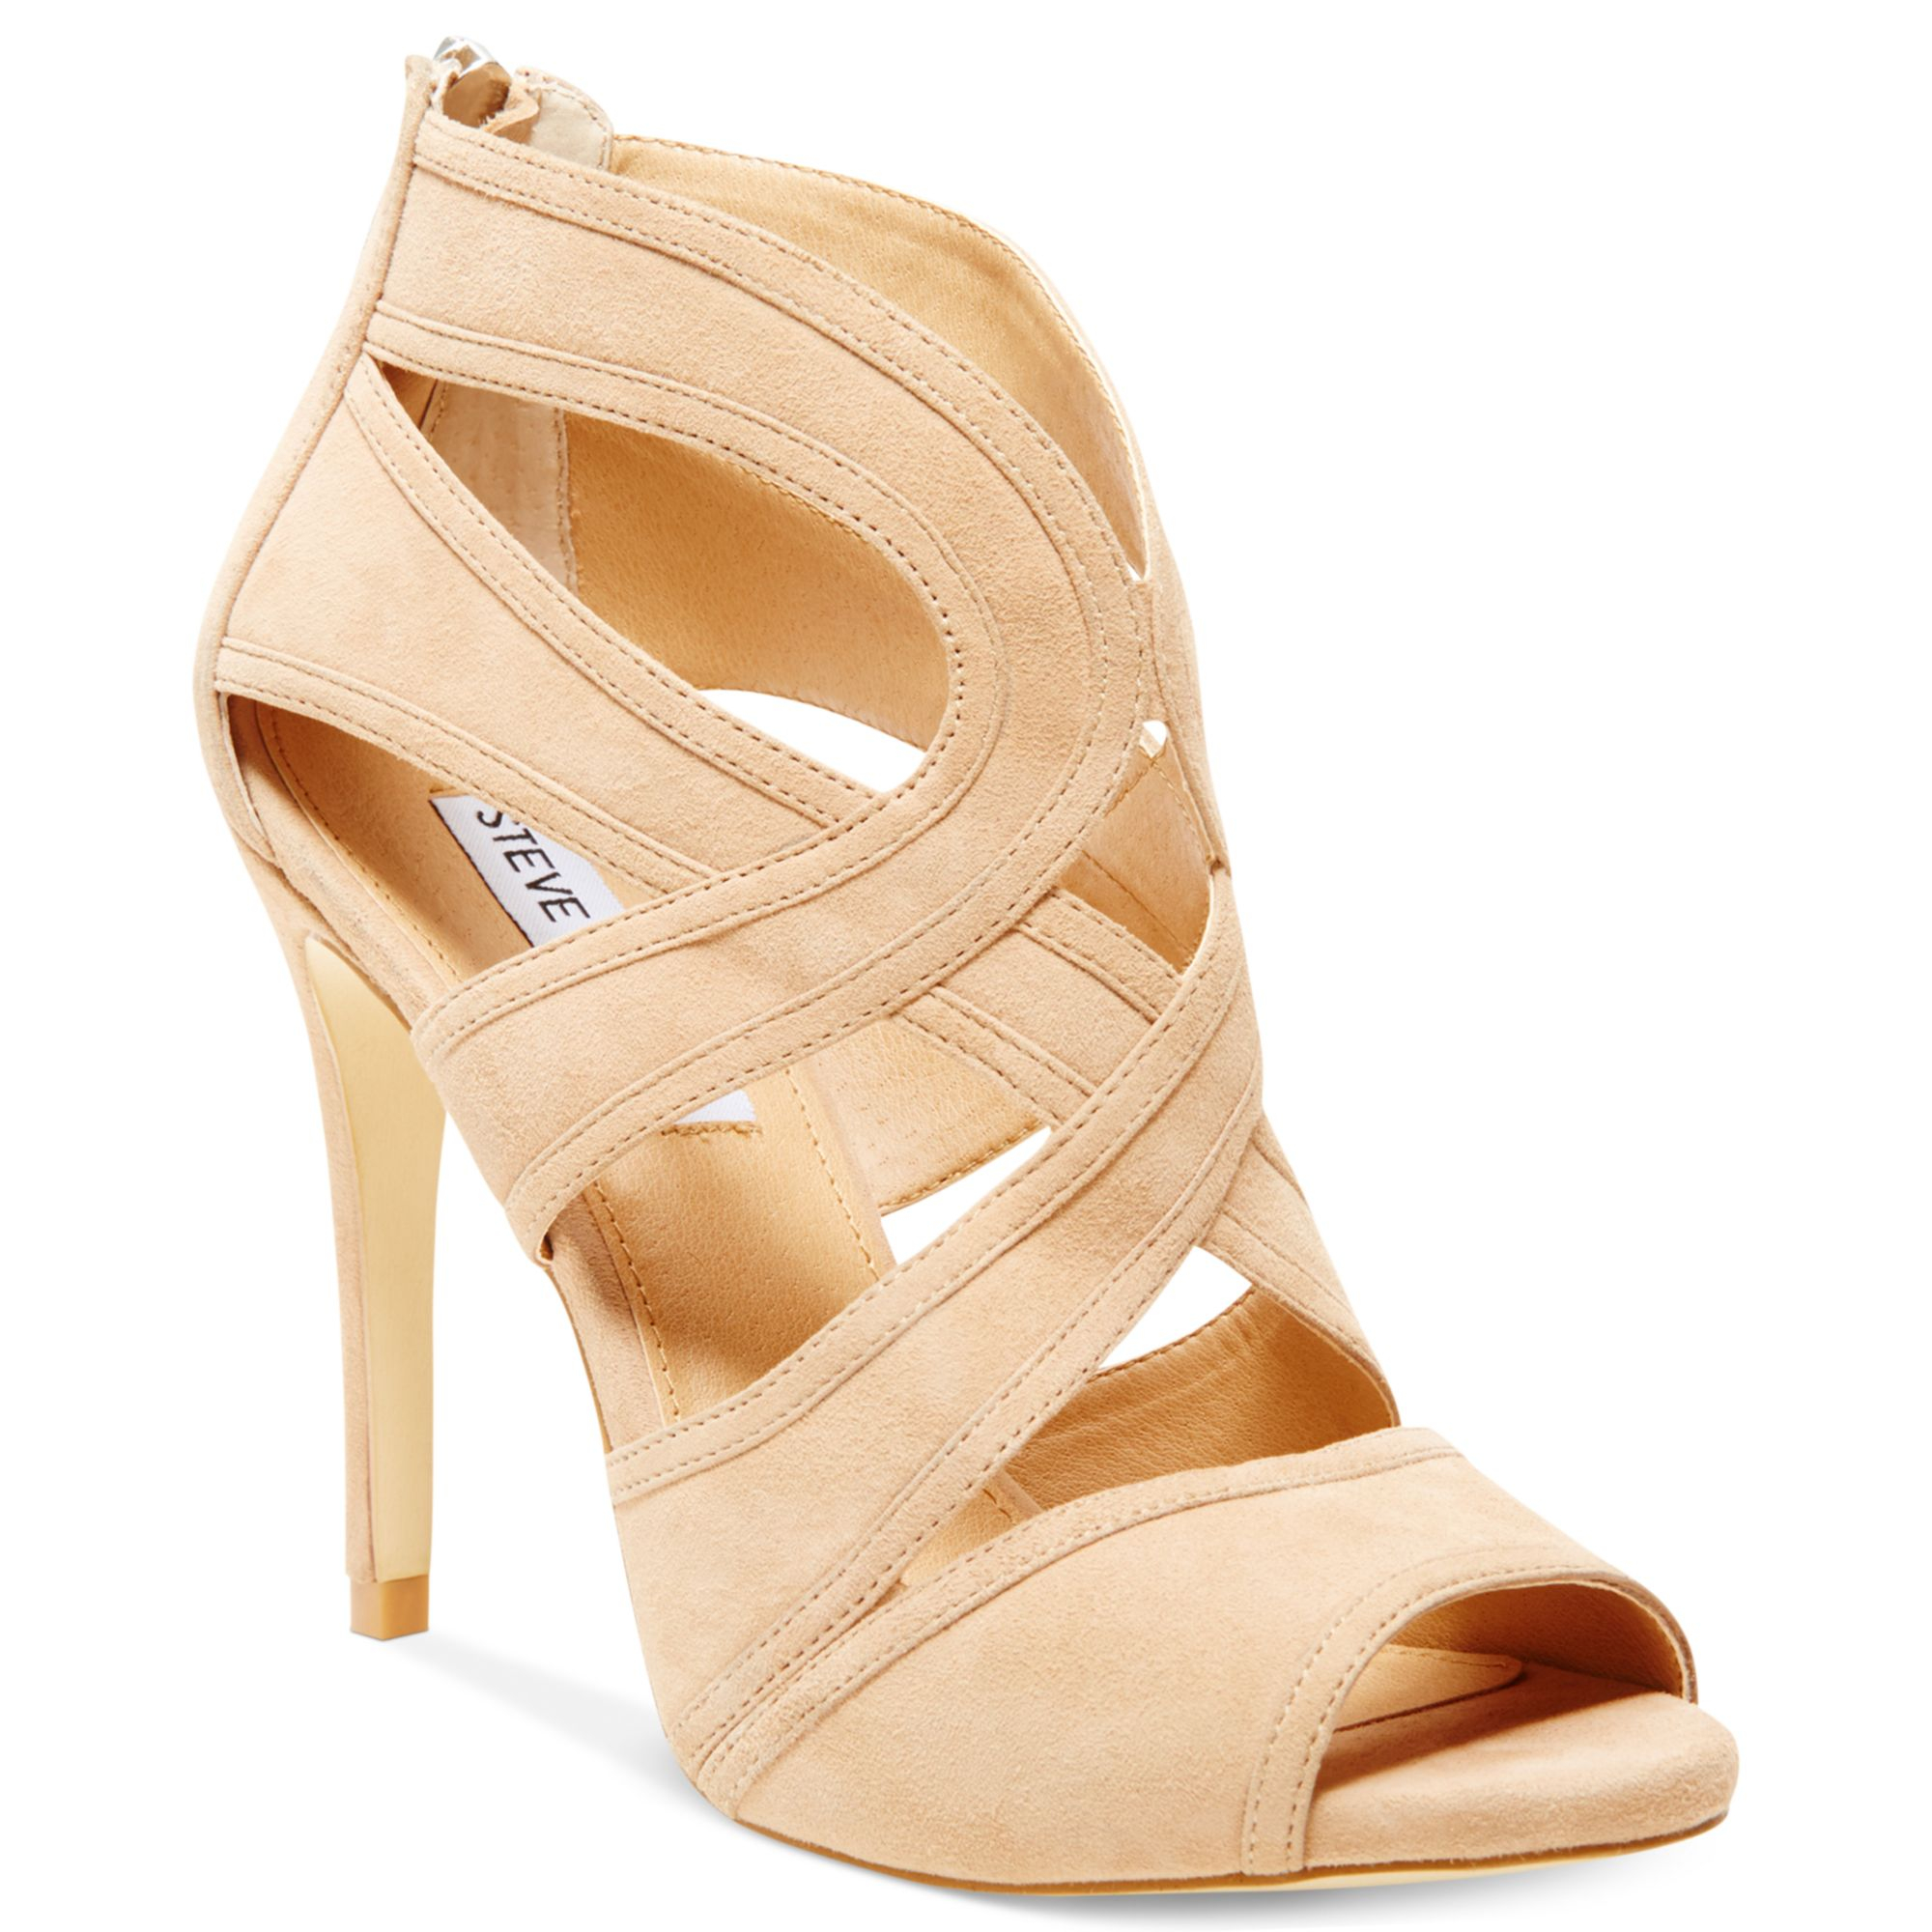 4dc5866430d Lyst - Steve Madden Womens Immence Strappy Sandals in Natural